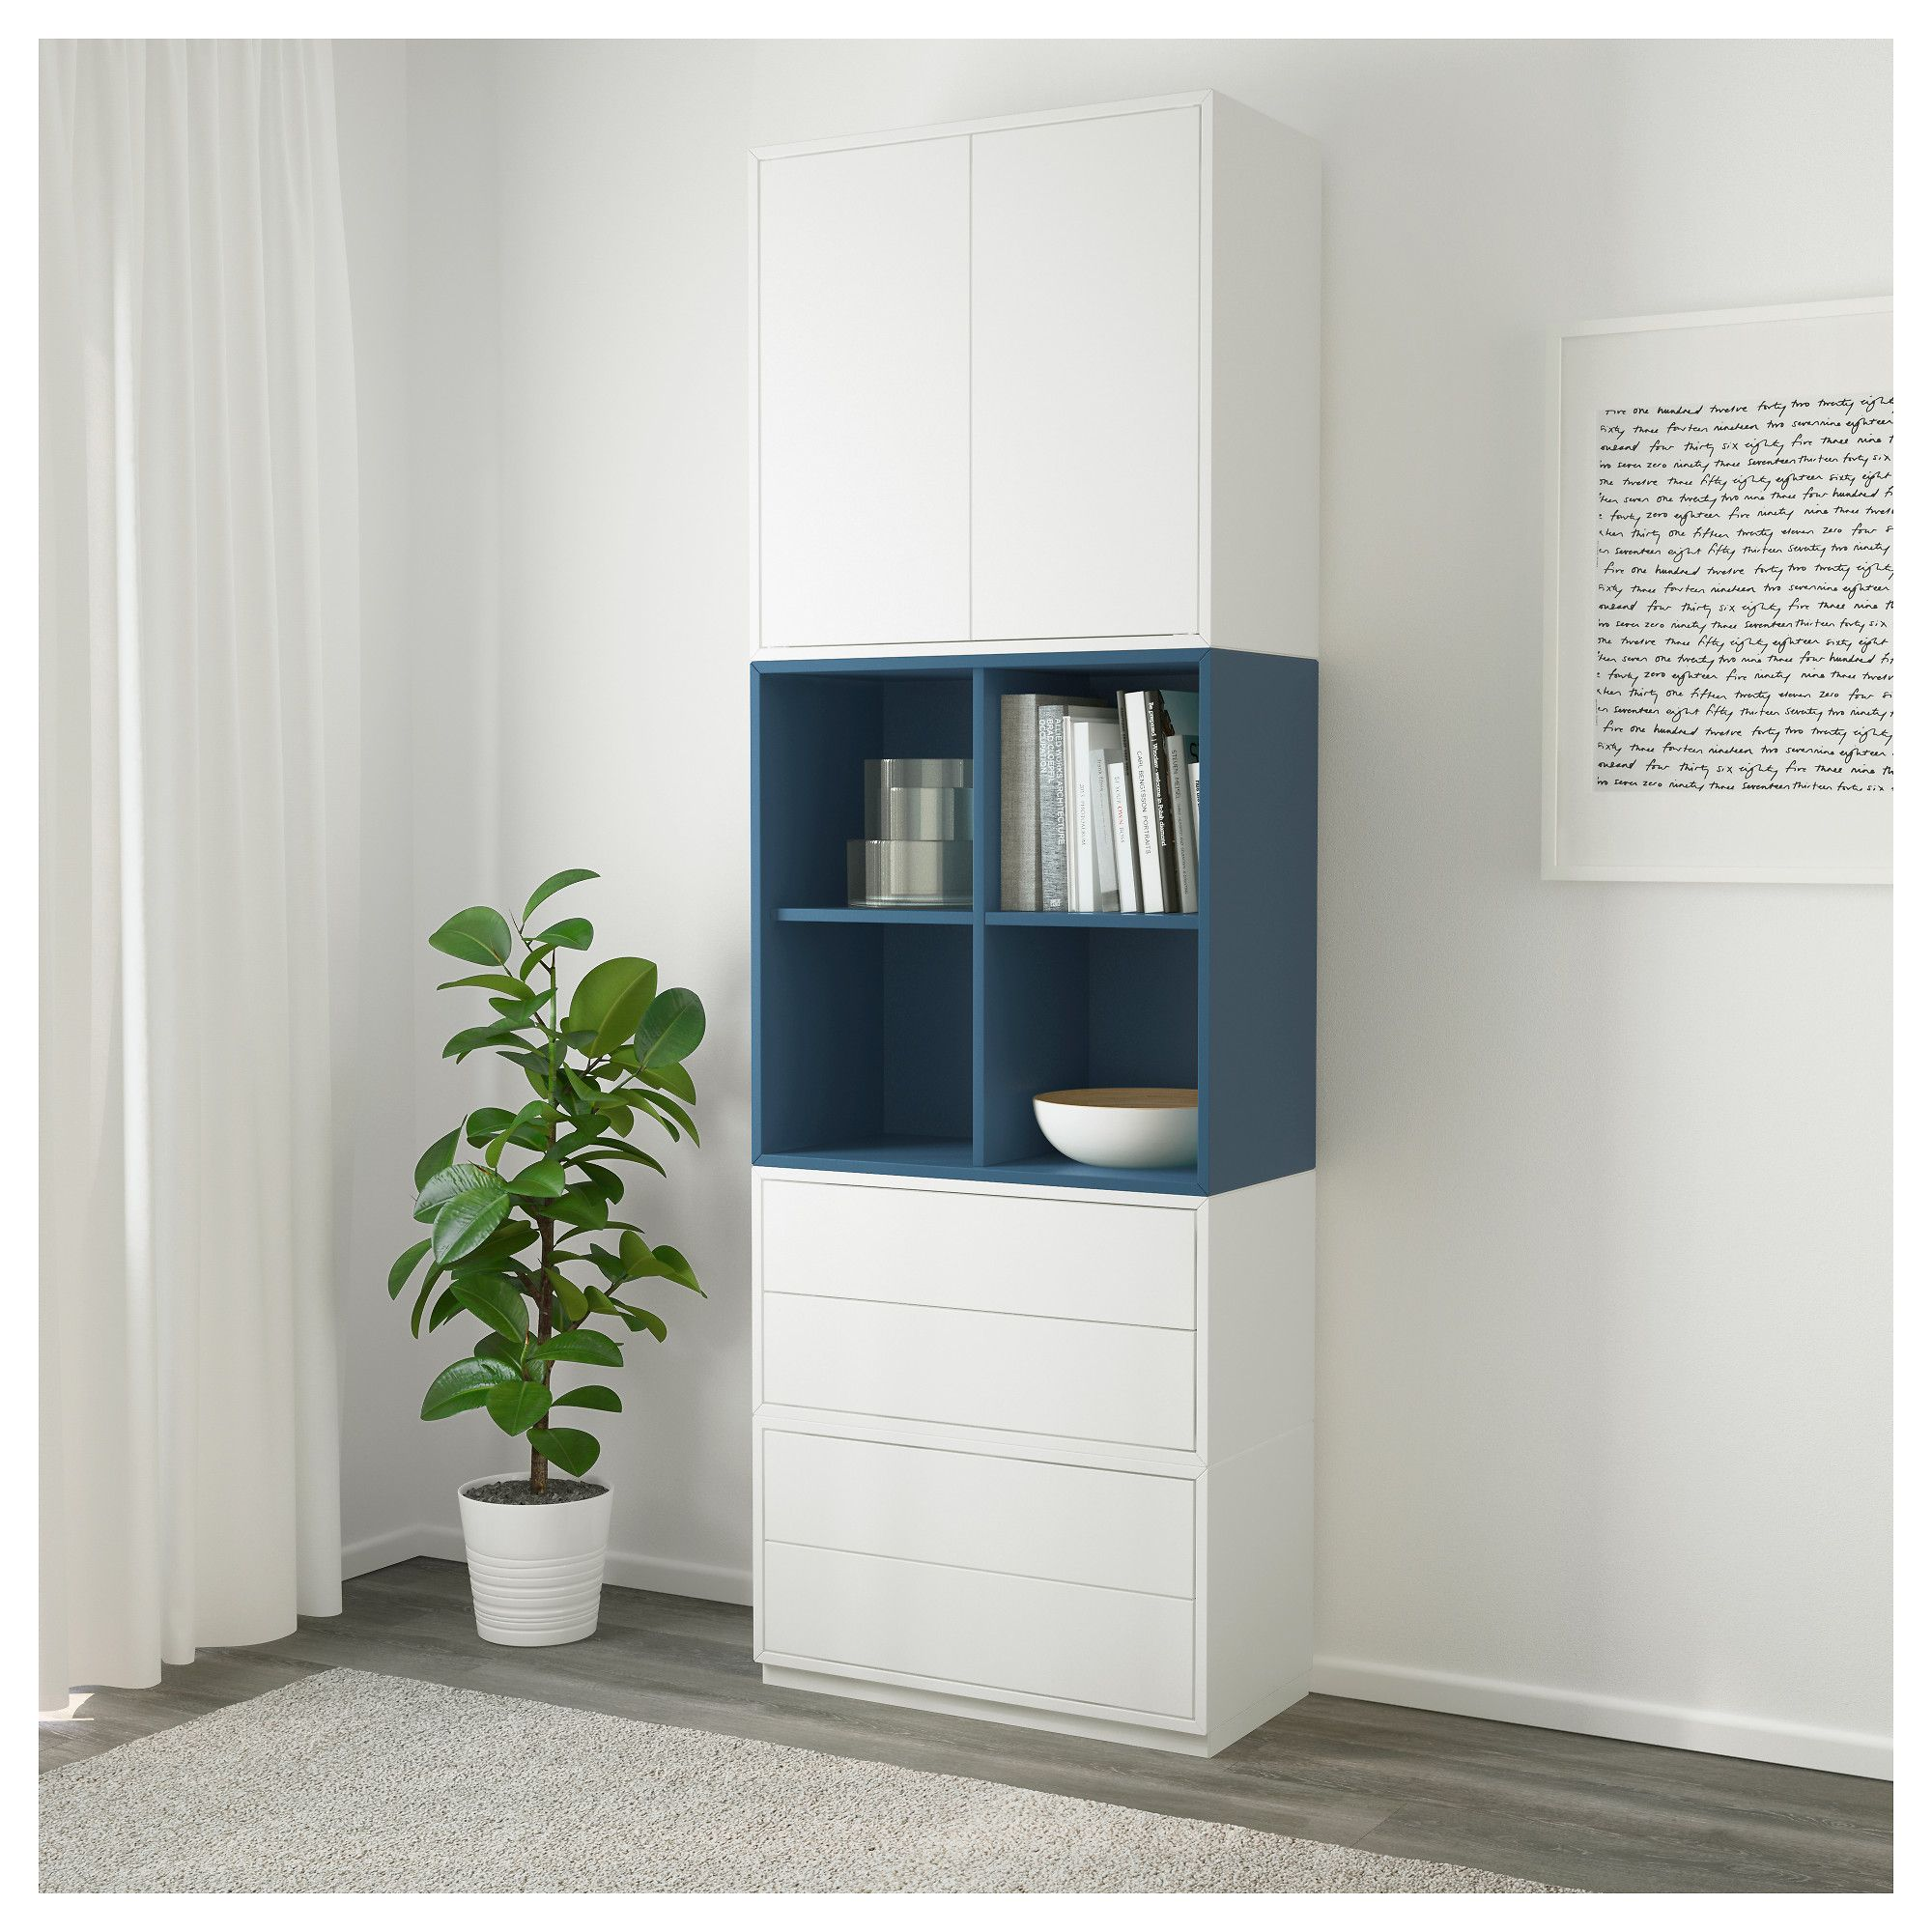 Muurkast Ikea Eket Storage Combination With Base Frame White Dark Blue In 2019